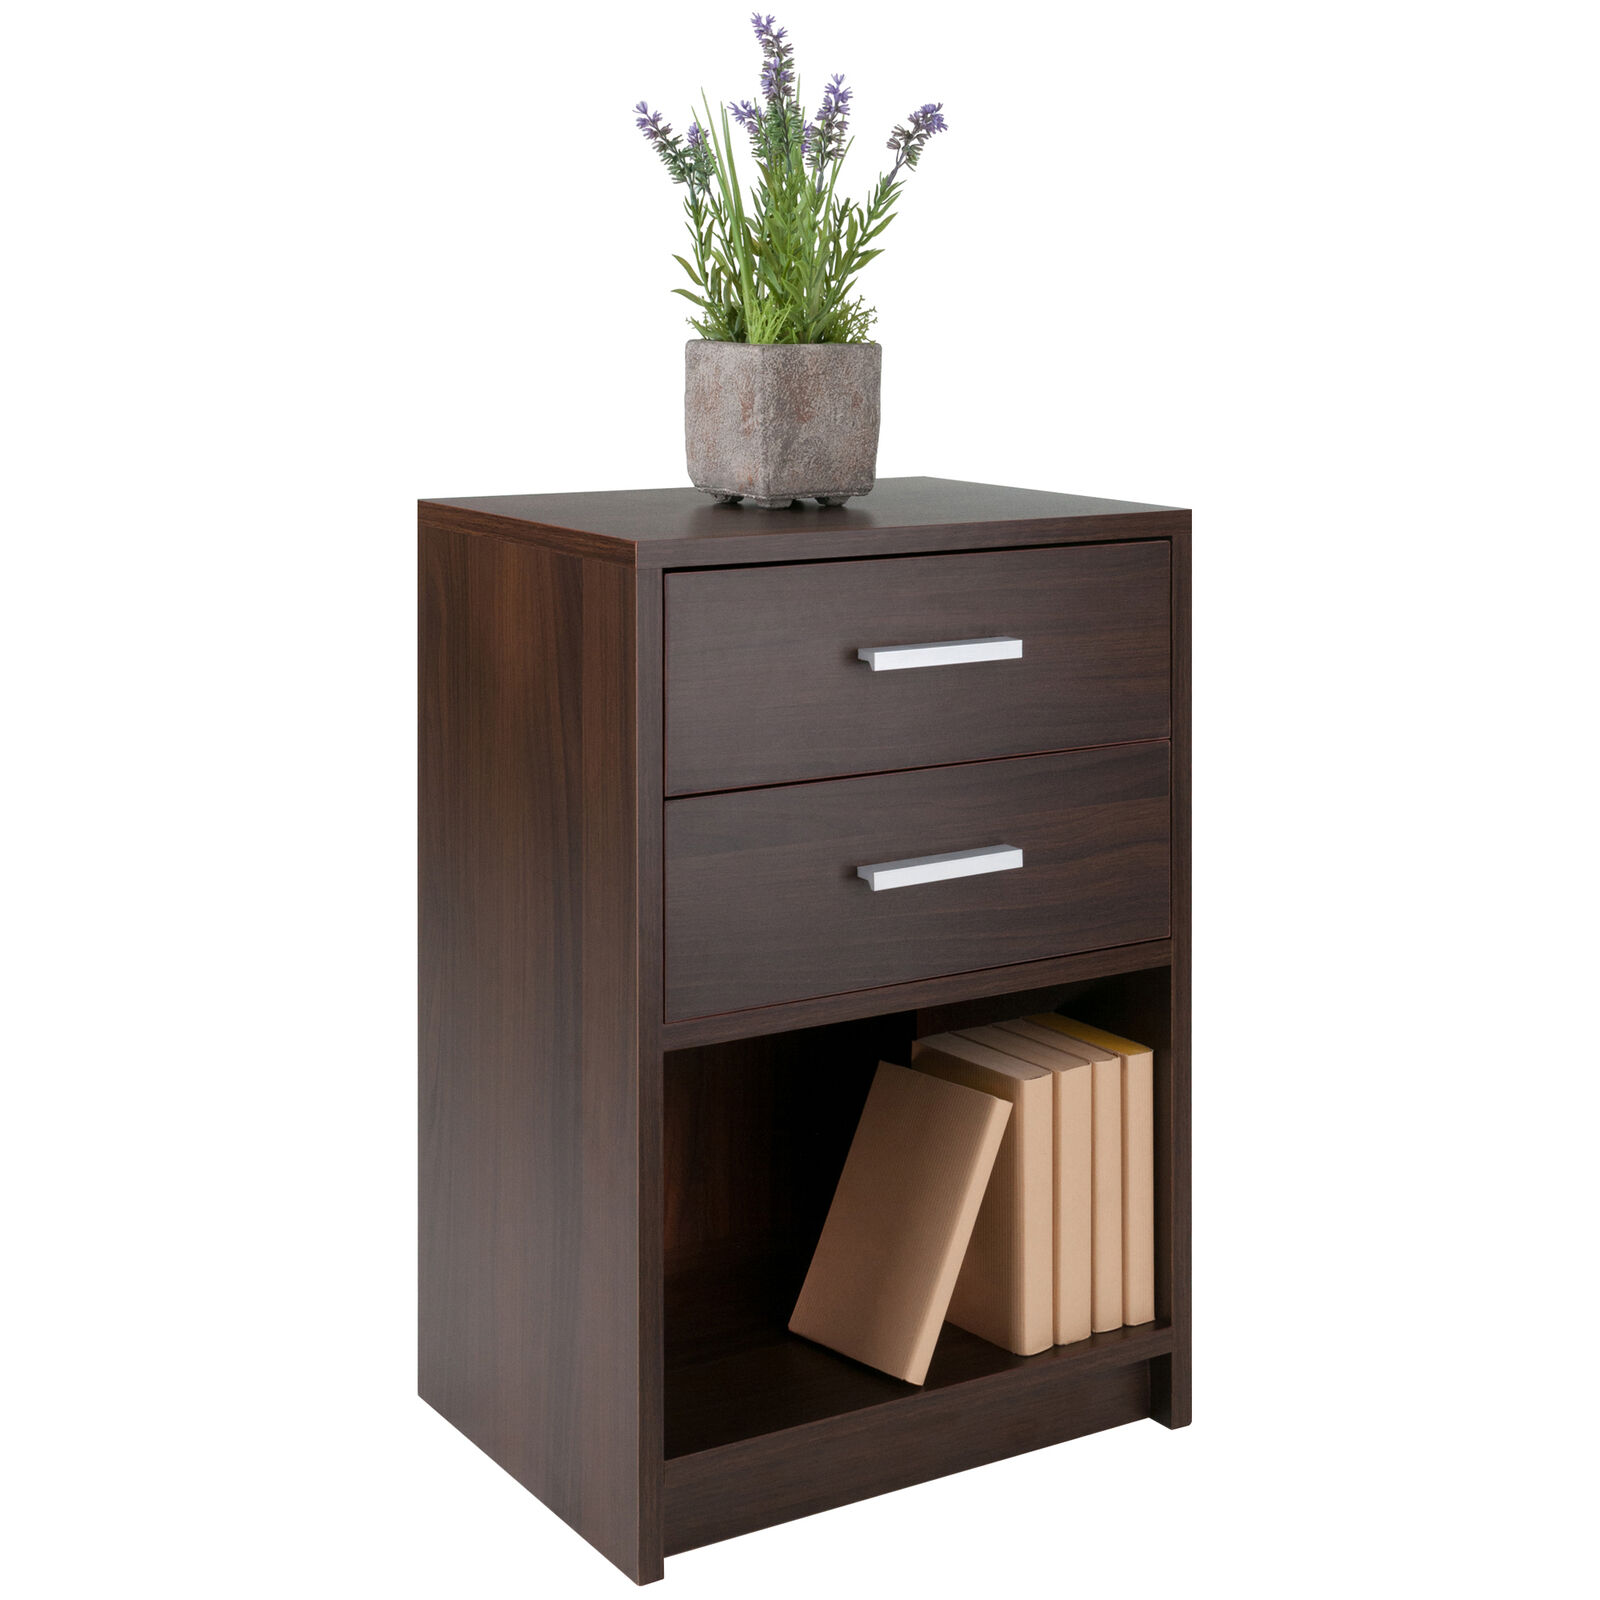 Modern 2-Drawer Nightstand w/ Cubby Storage Shelf Bedside Table Lamp Stand Brown